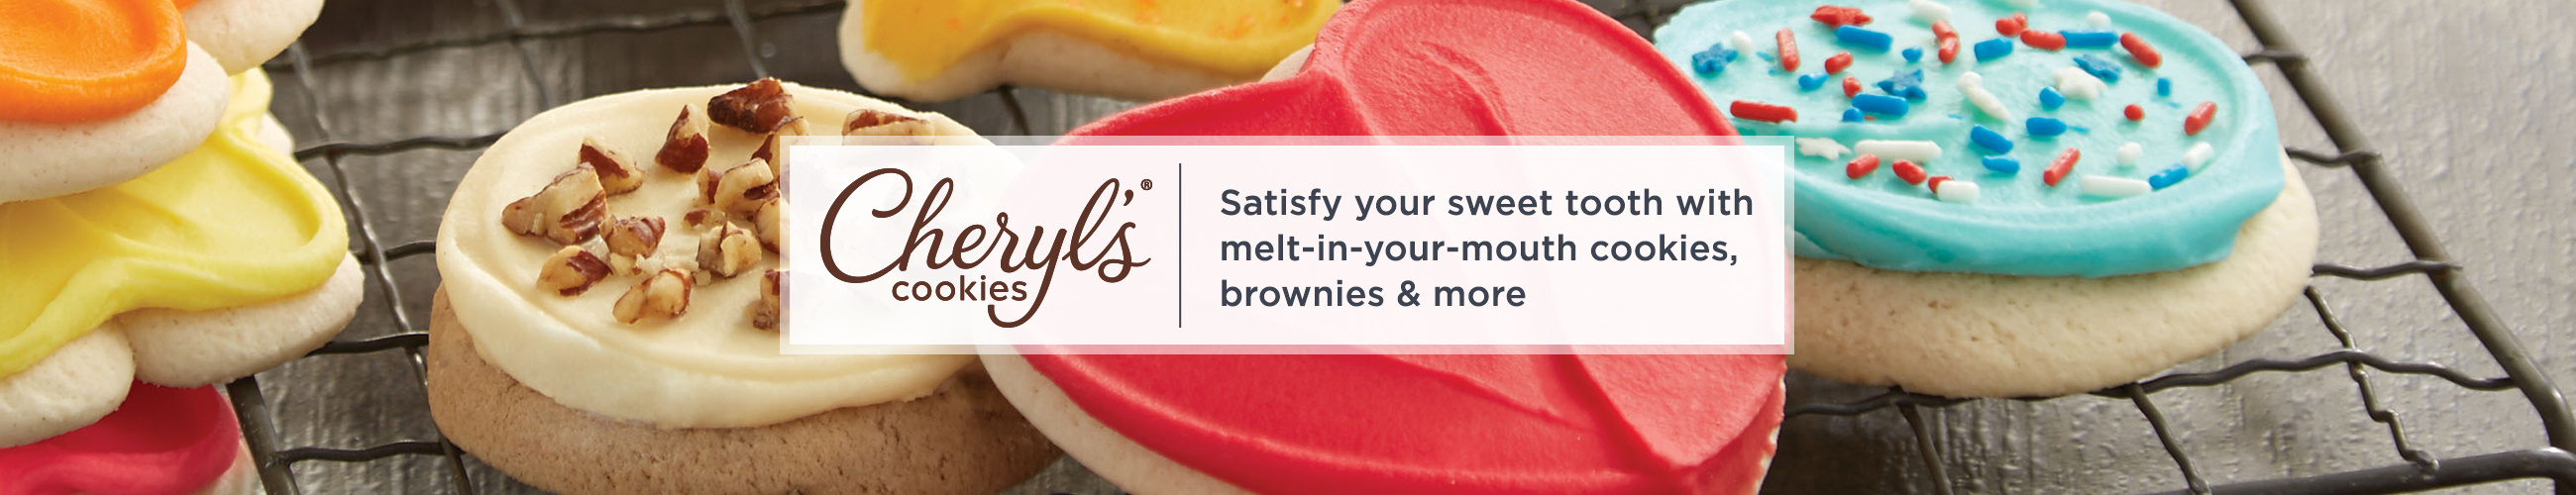 Cheryl's Cookies. Satisfy your sweet tooth with melt-in-your-mouth cookies, brownies & more